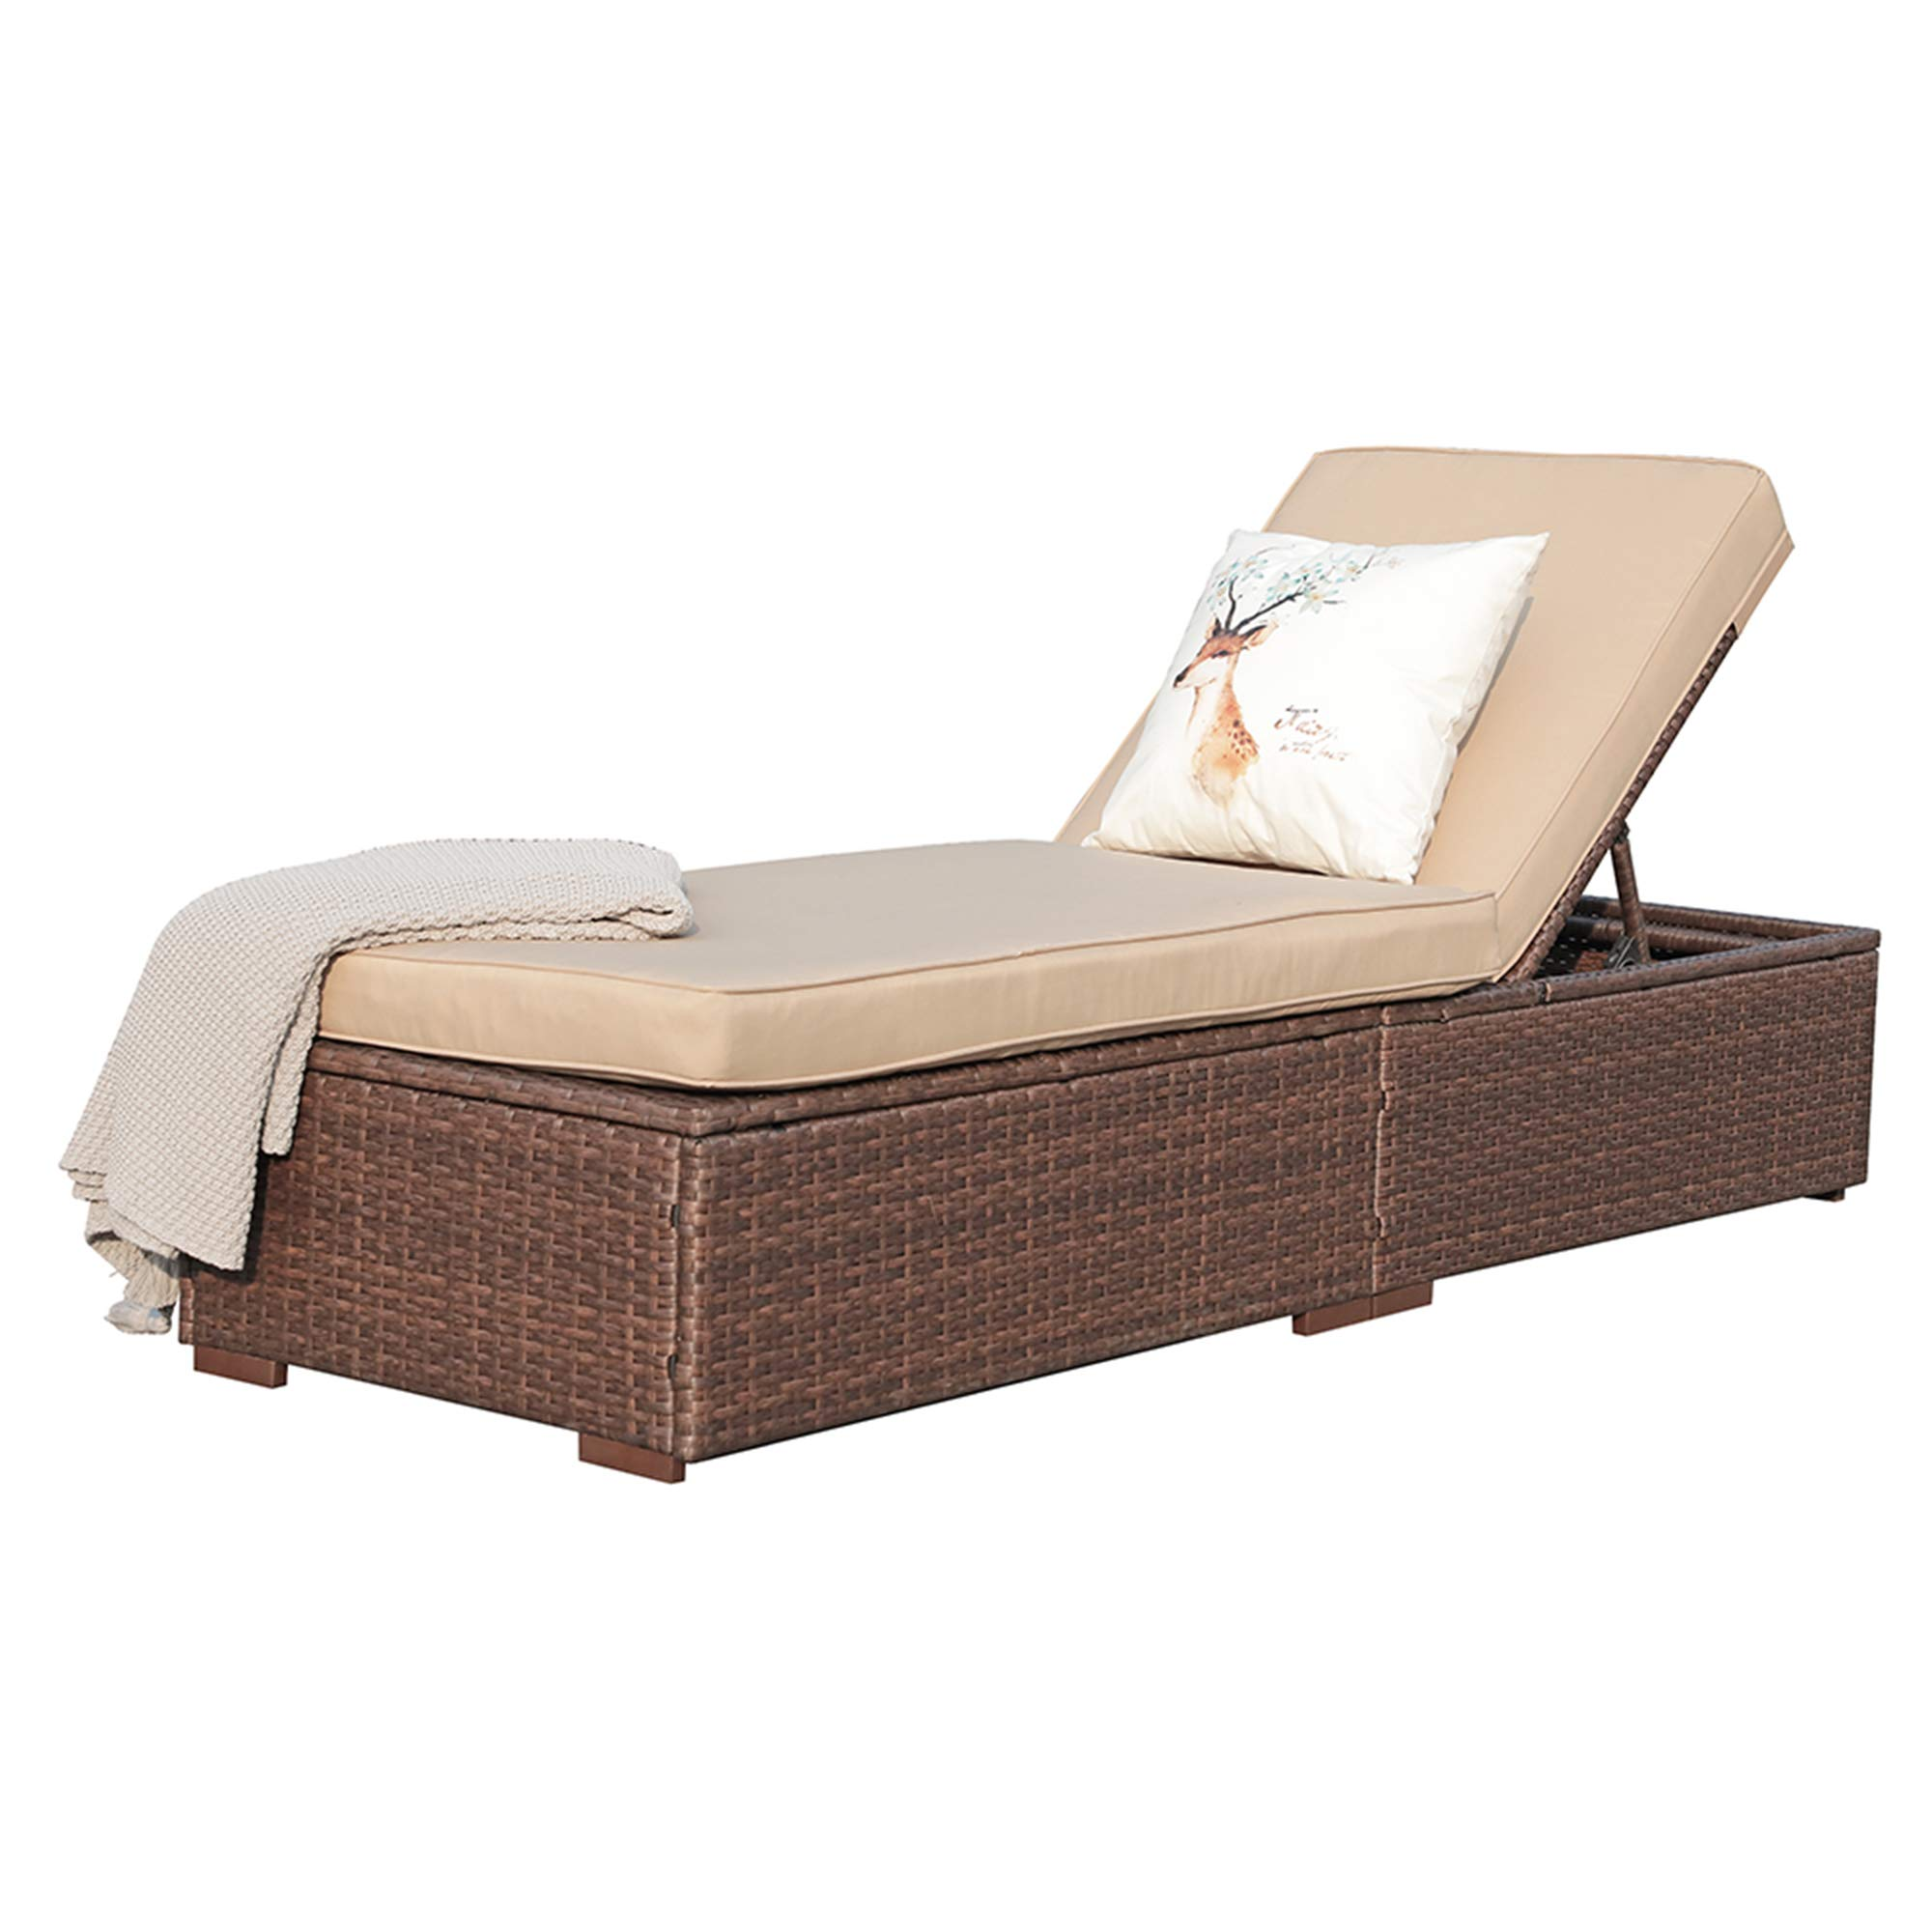 Super Patio Outdoor Adjustable Pool Rattan Chaise Lounge Chair with Steel Frame, Beige Cushions, Brown PE Wicker by Super Patio